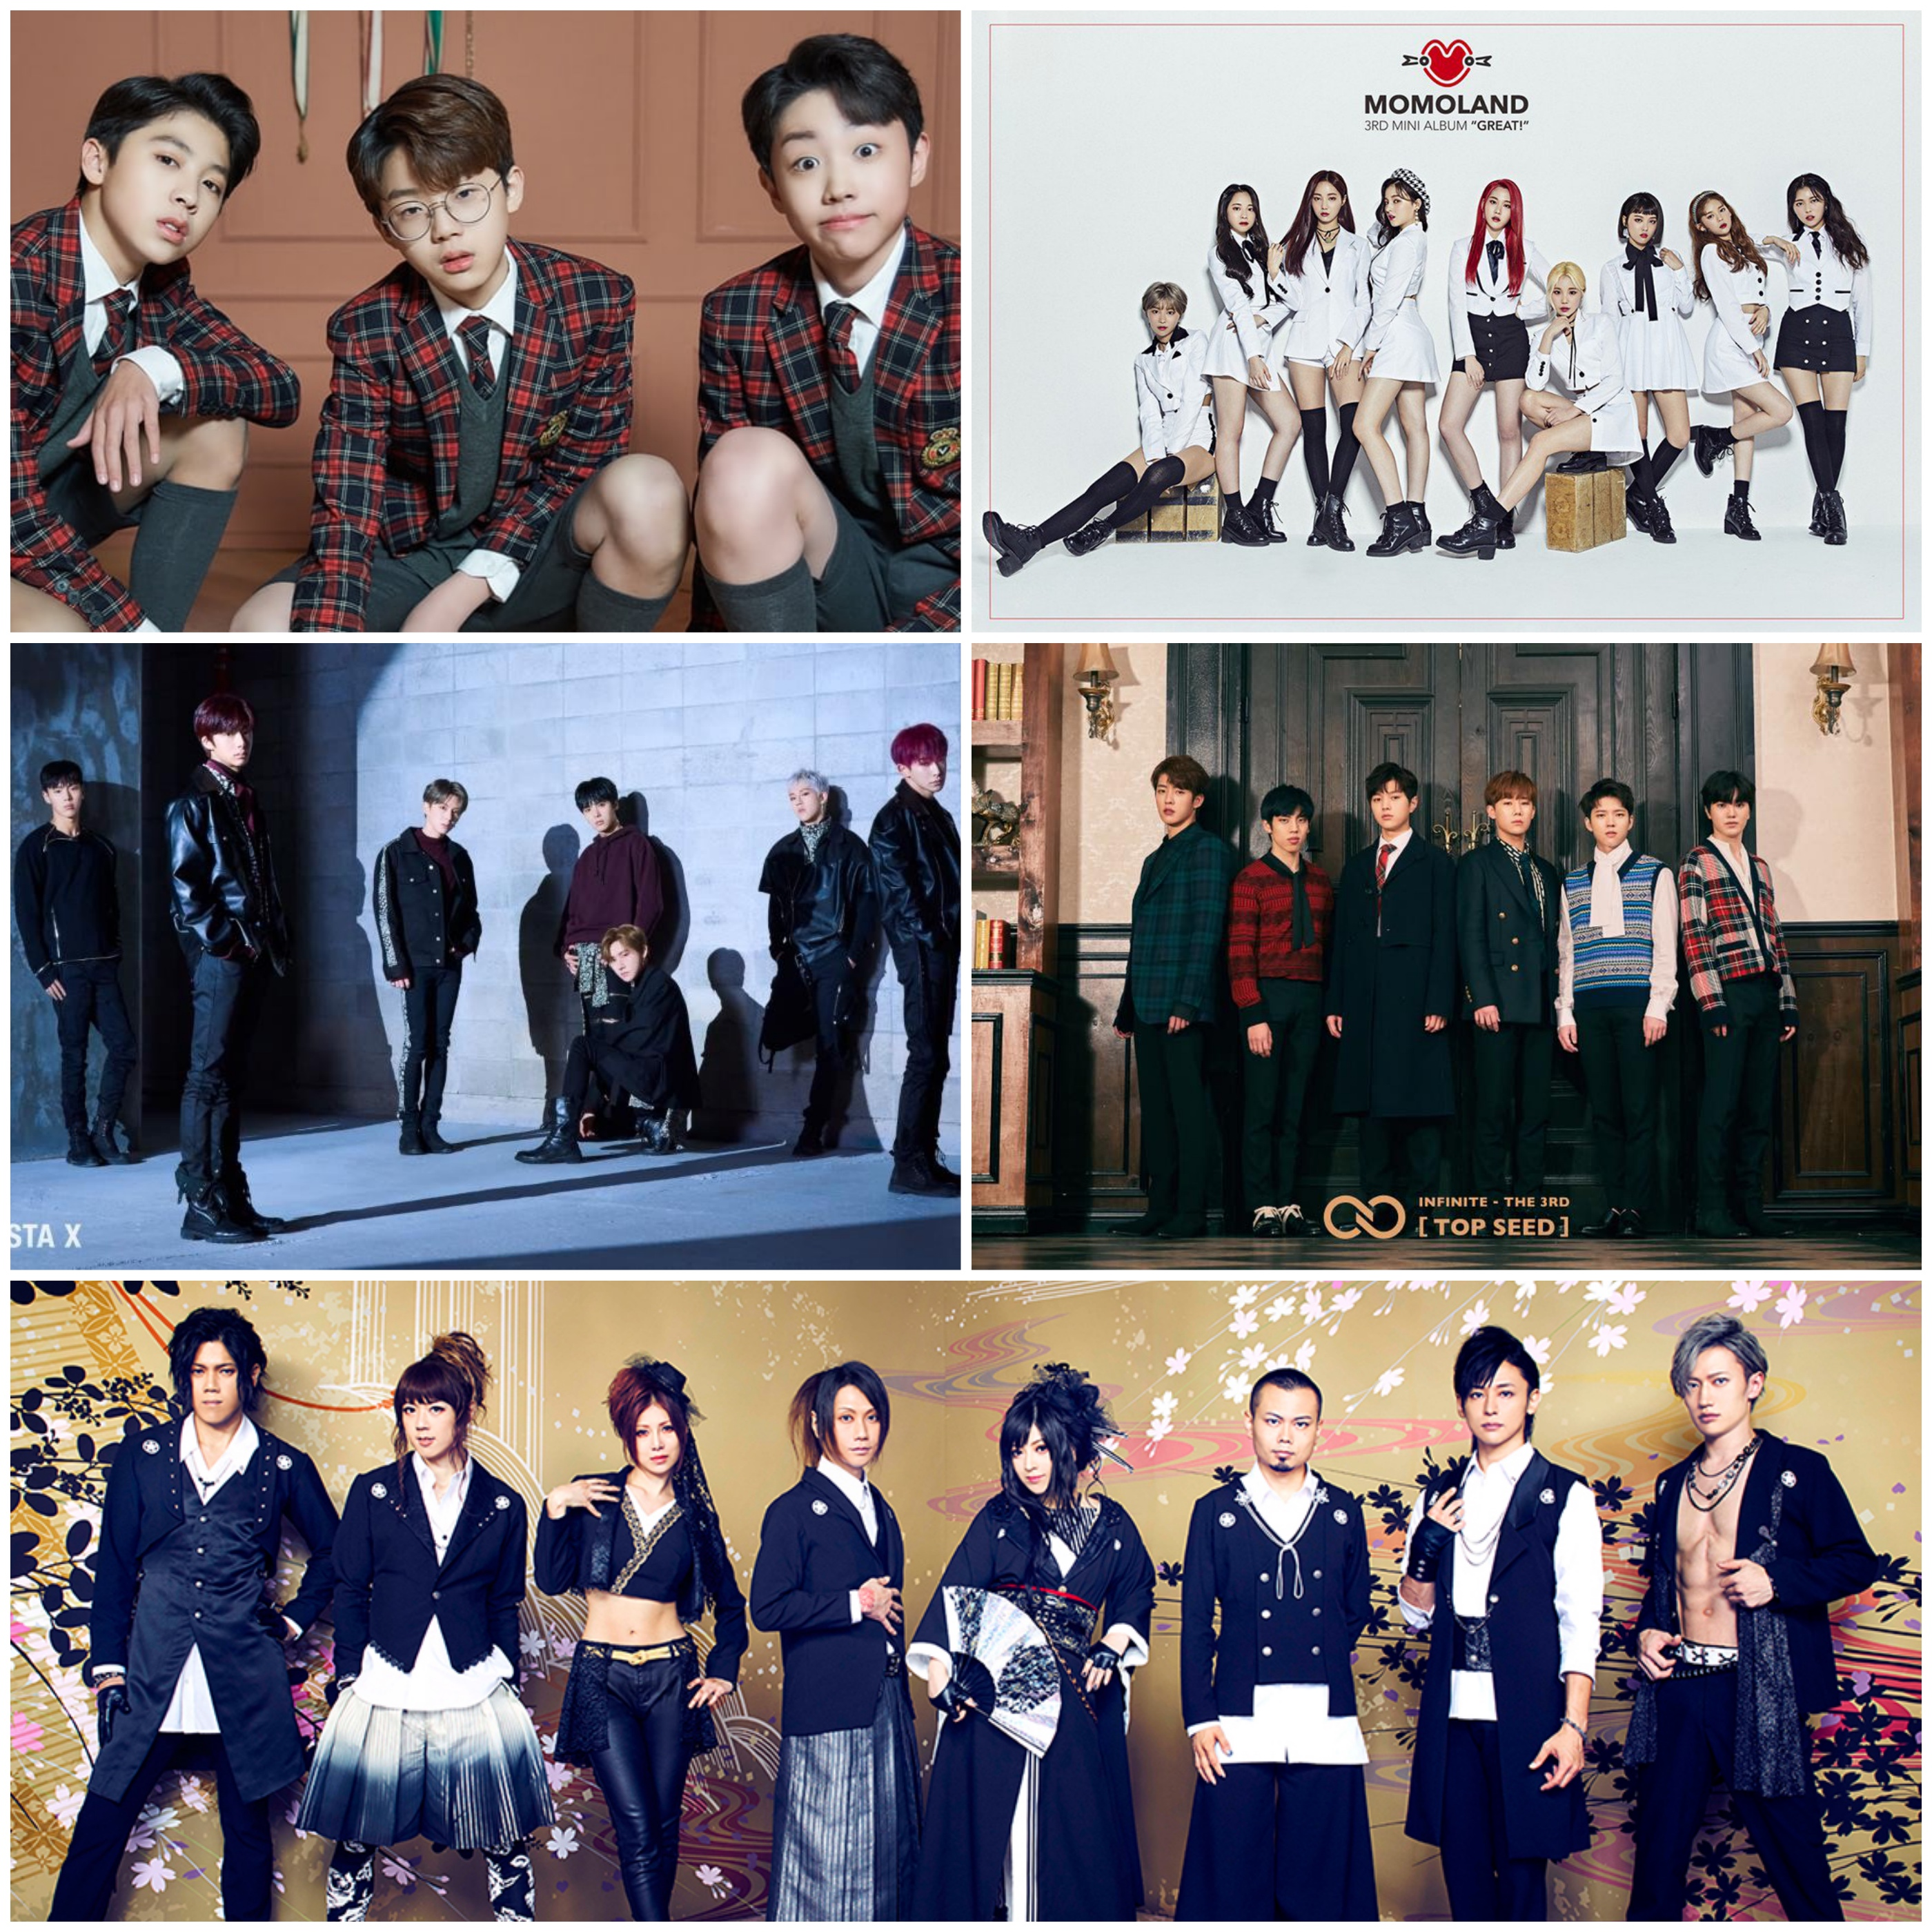 can single bands kpop infinite u band download smile explorer